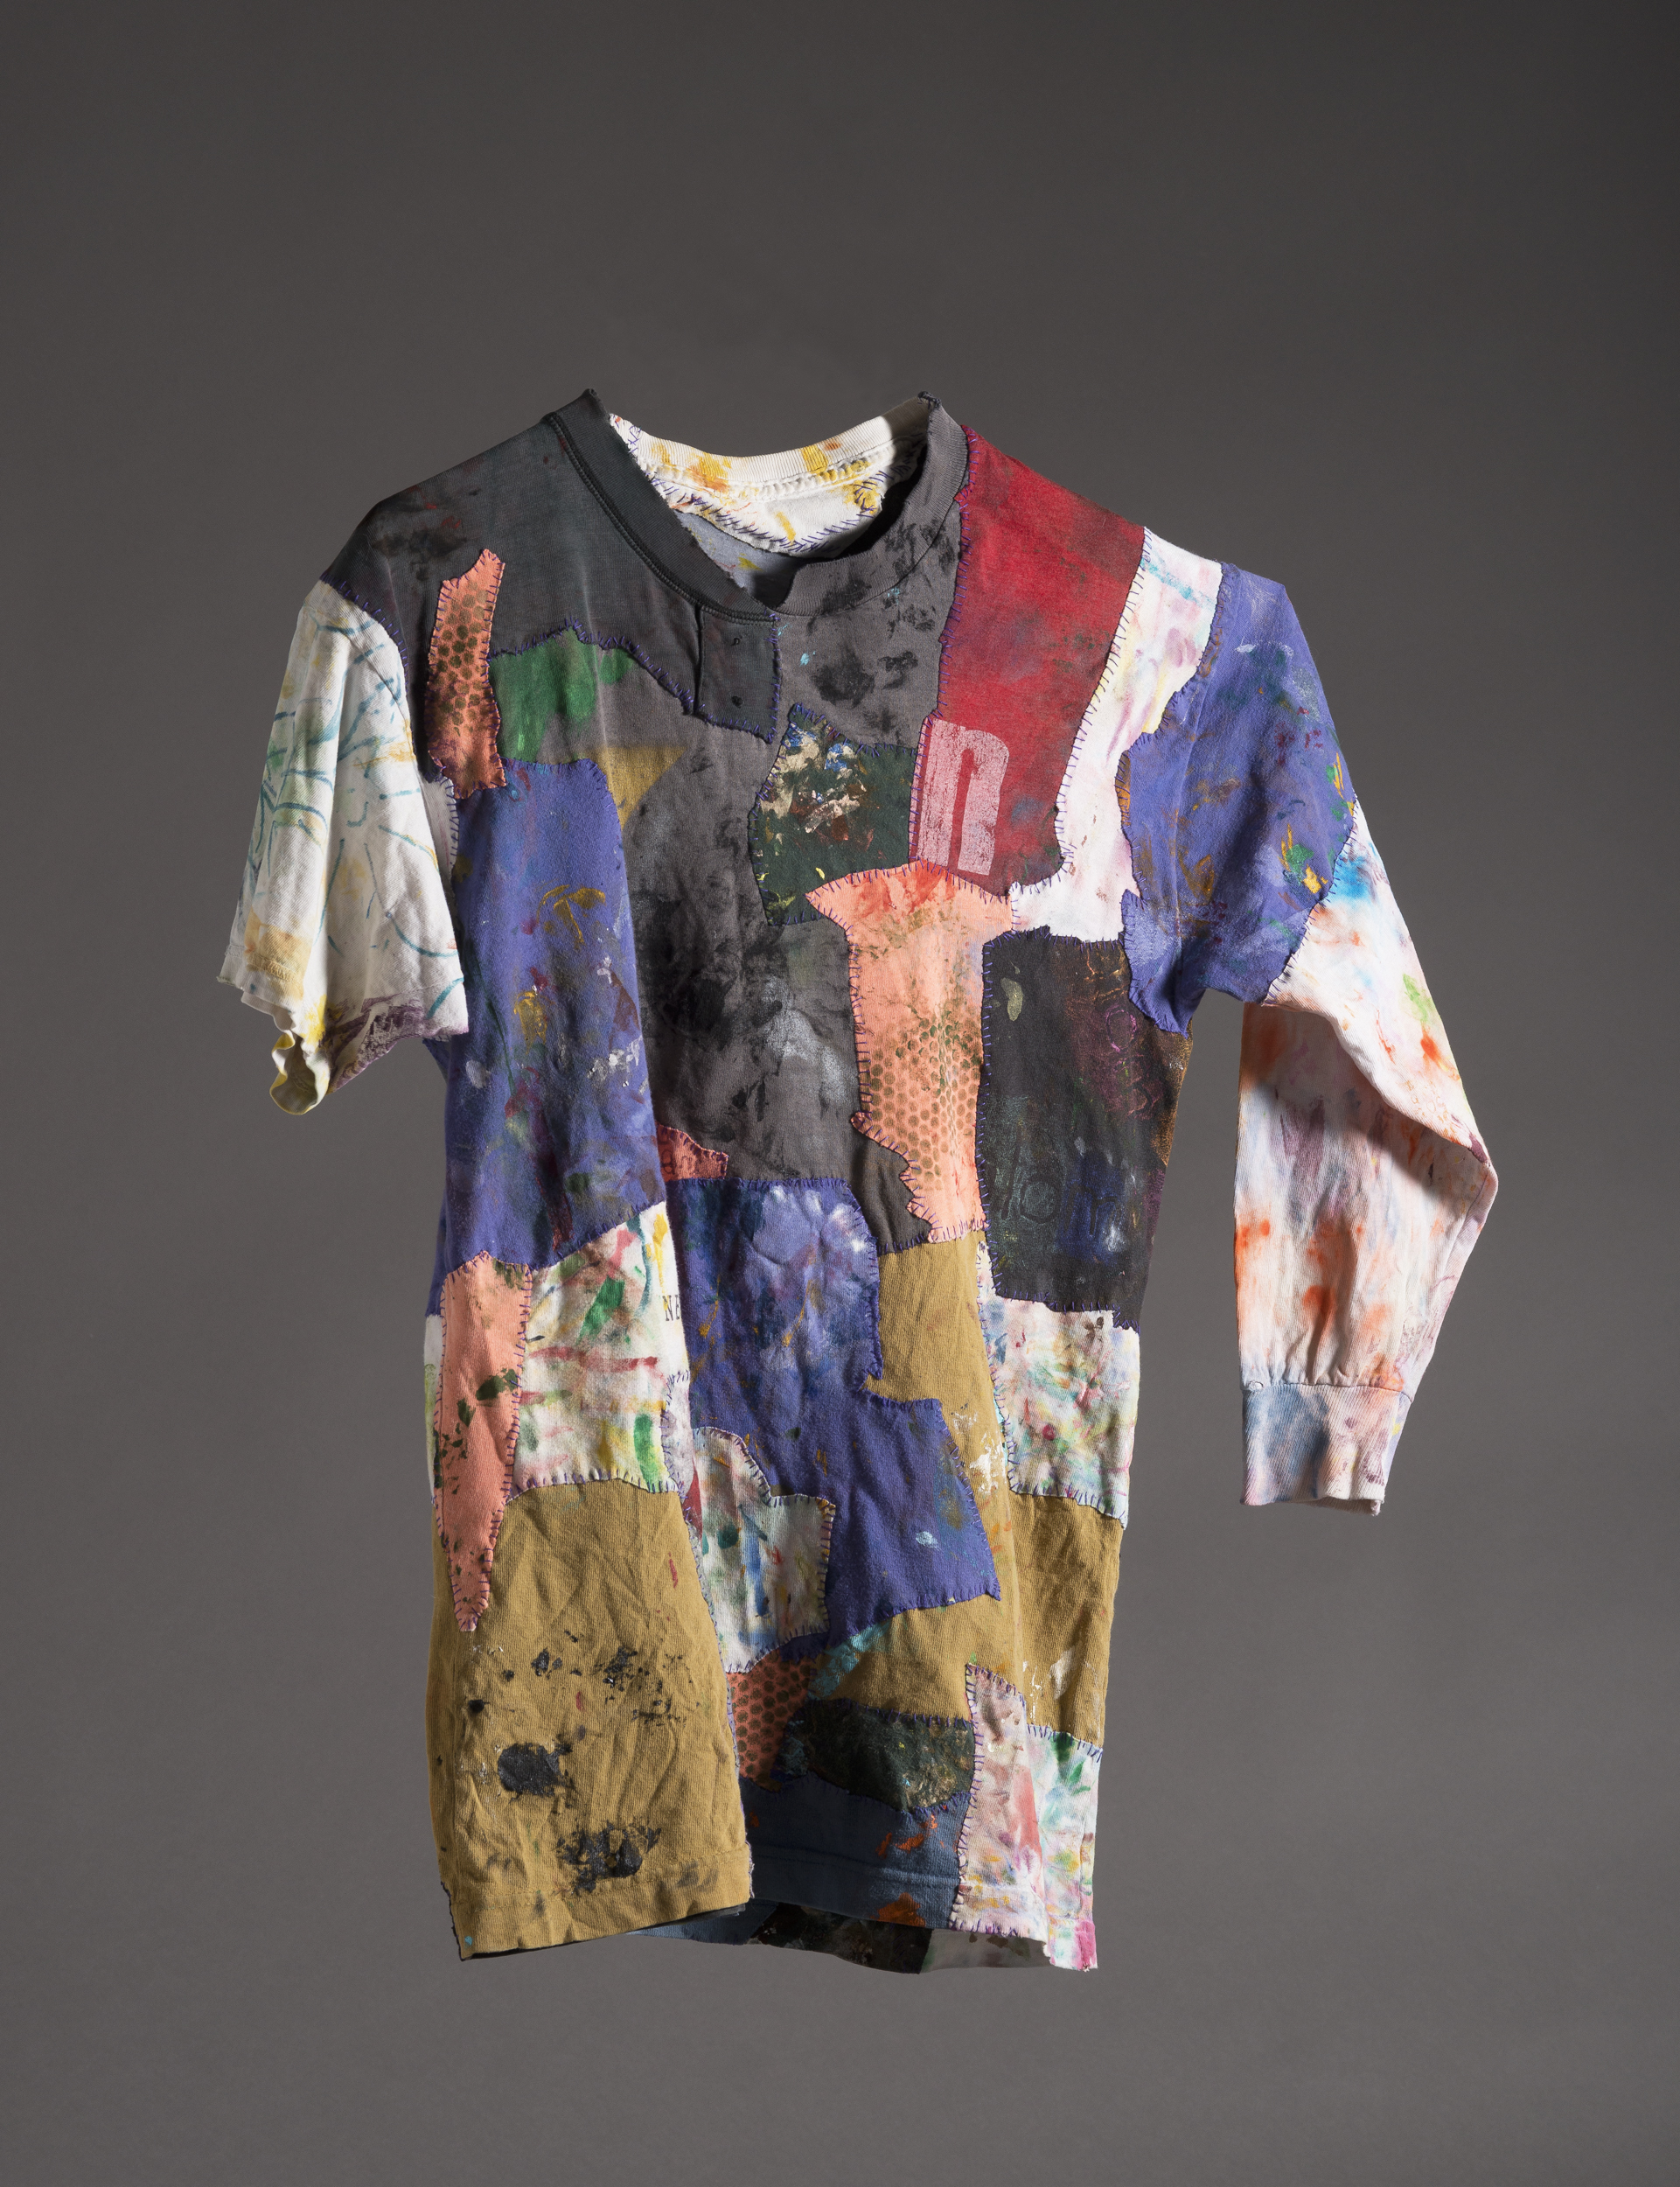 painting rag shirts, acrylic, painting, painting rags, sewing, thread, putting pieces back together, making a painting, shirts, t-shirts, sleeves, colors, paint, cleaning brushes, recycling, repurposing, painting history, wearable art, wearable paintings,